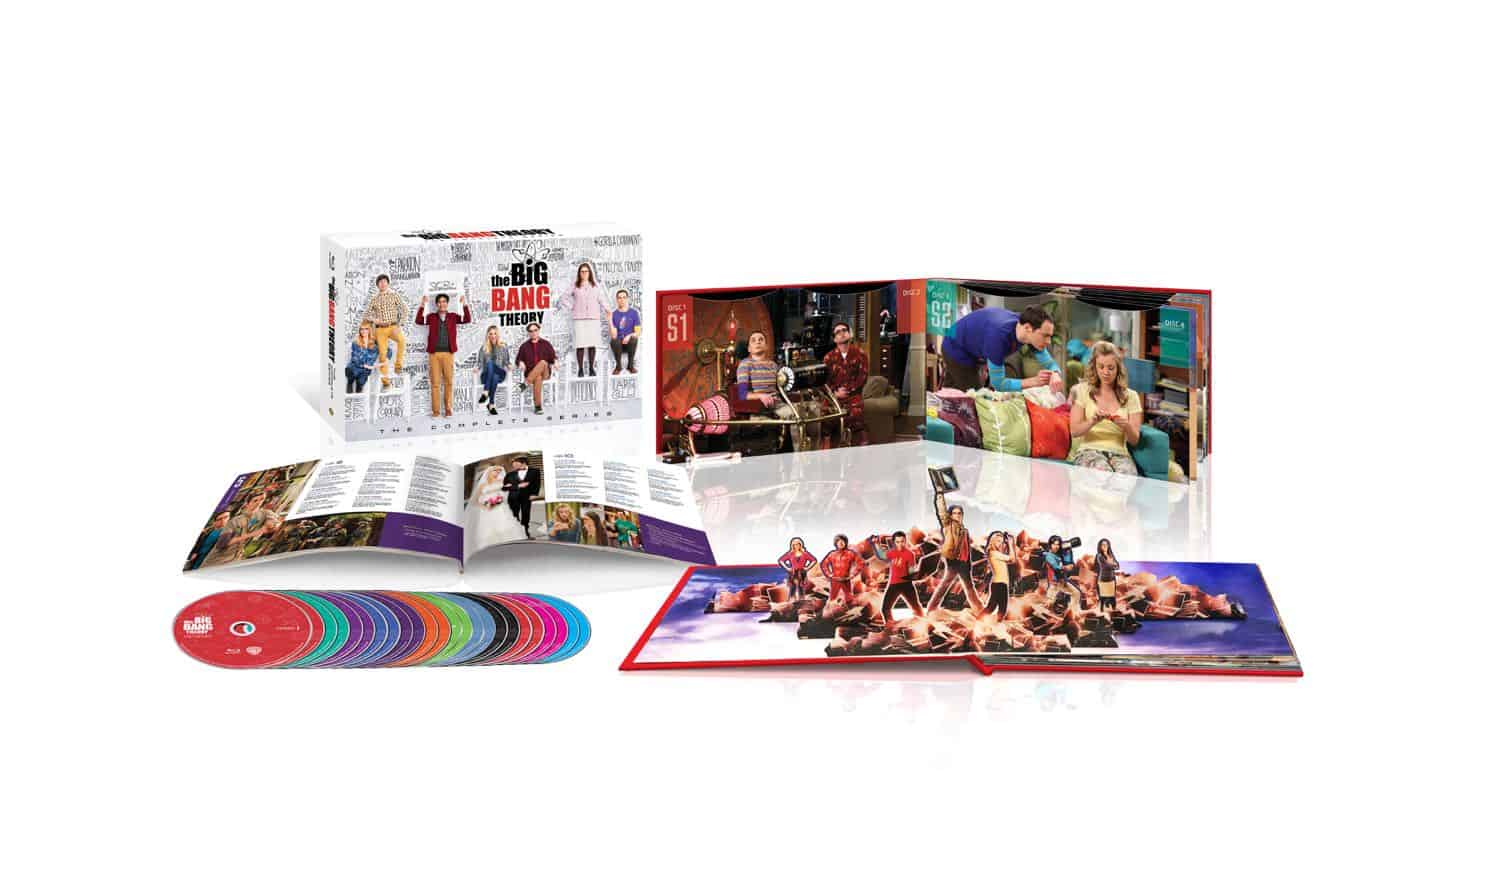 The Big Bang Theory Complete Series Bluray